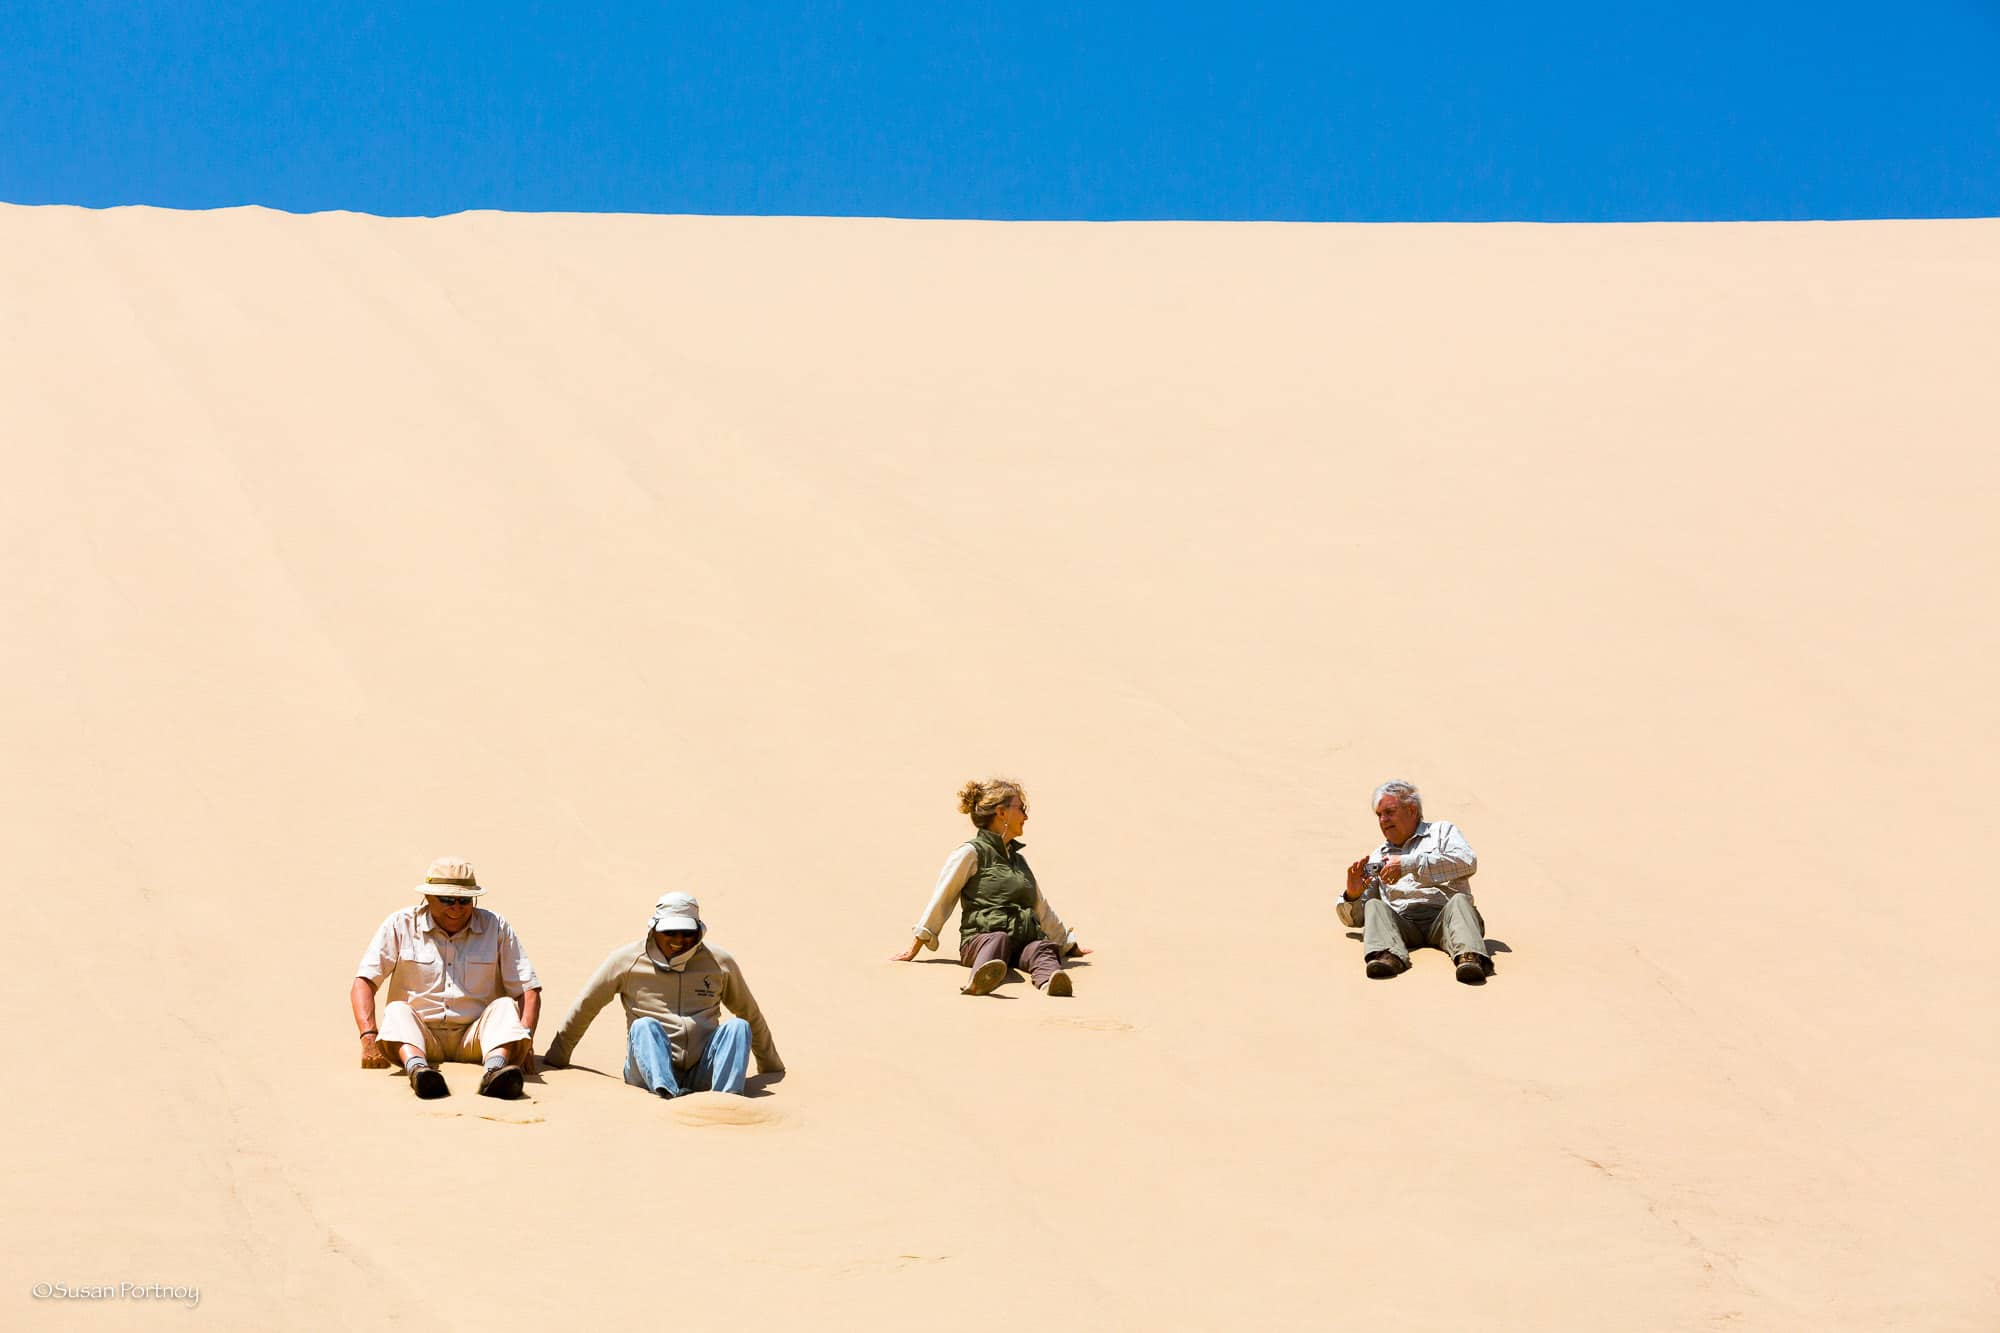 My camp-mates scooting down the dunes on their bottoms. I strategy I chose to avoid. They were shaking sand out of their shorts the rest of the day